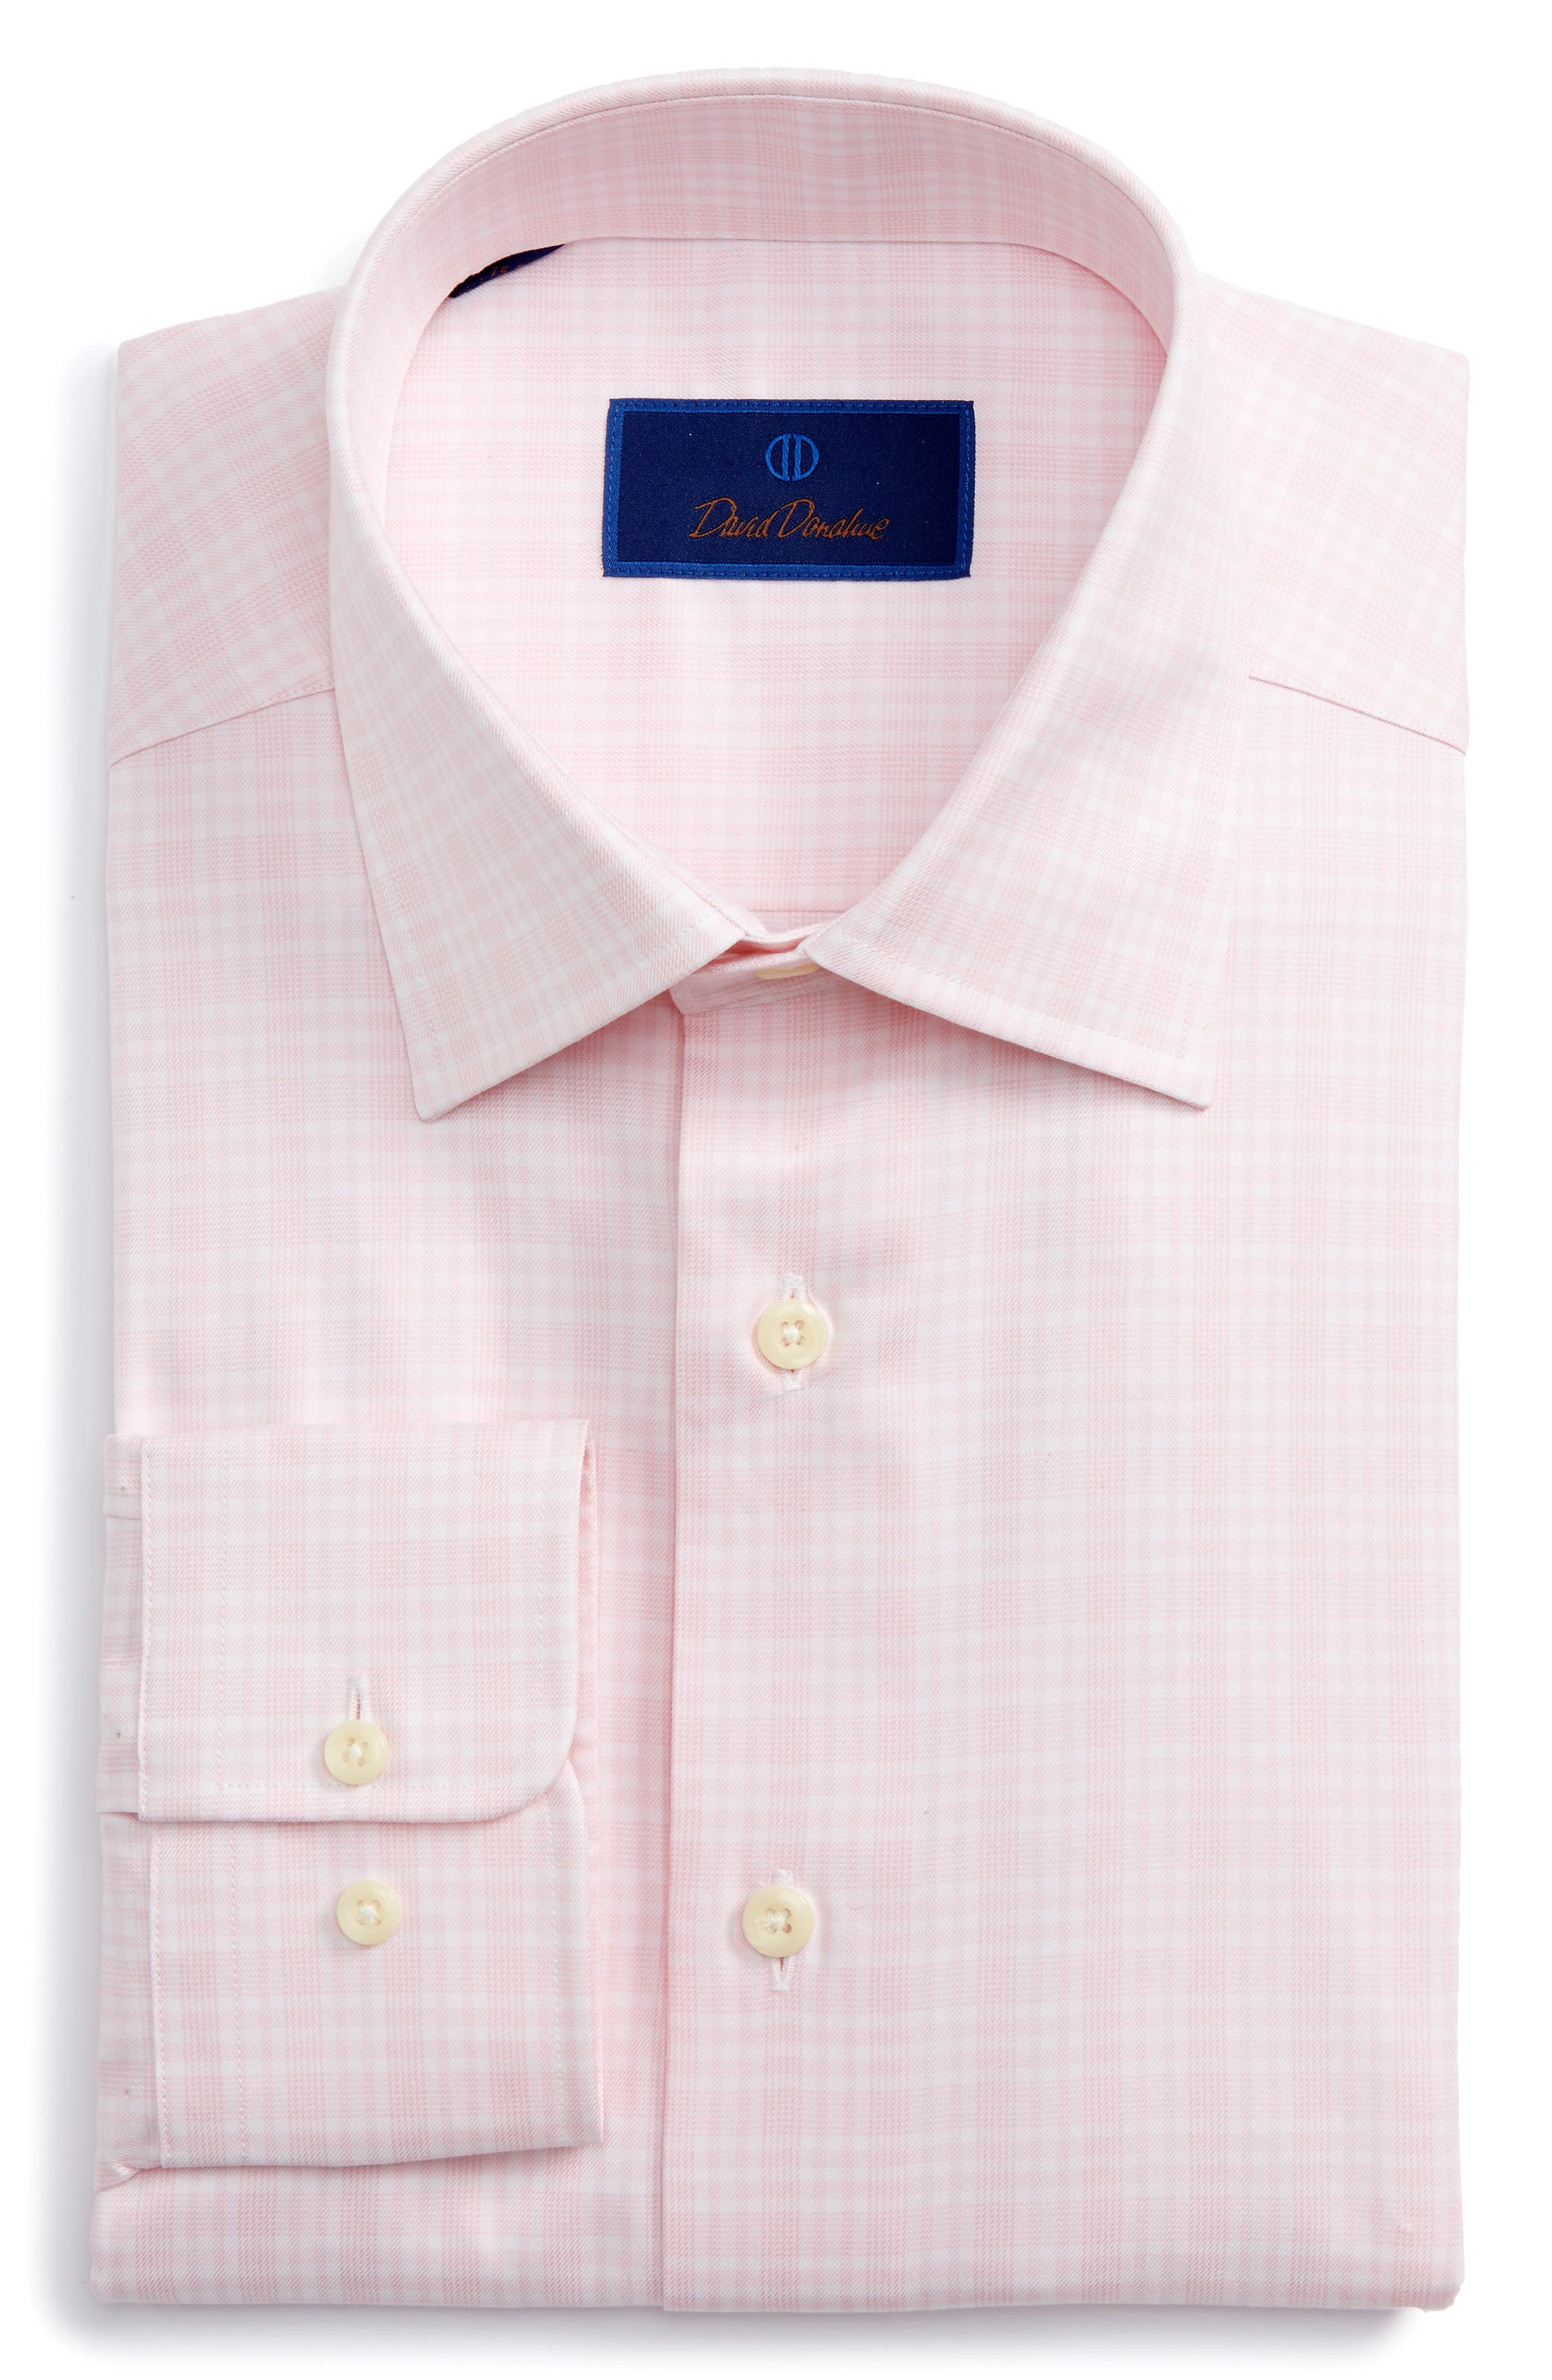 Regular Fit Plaid Dress Shirt,                             Main thumbnail 1, color,                             Pink